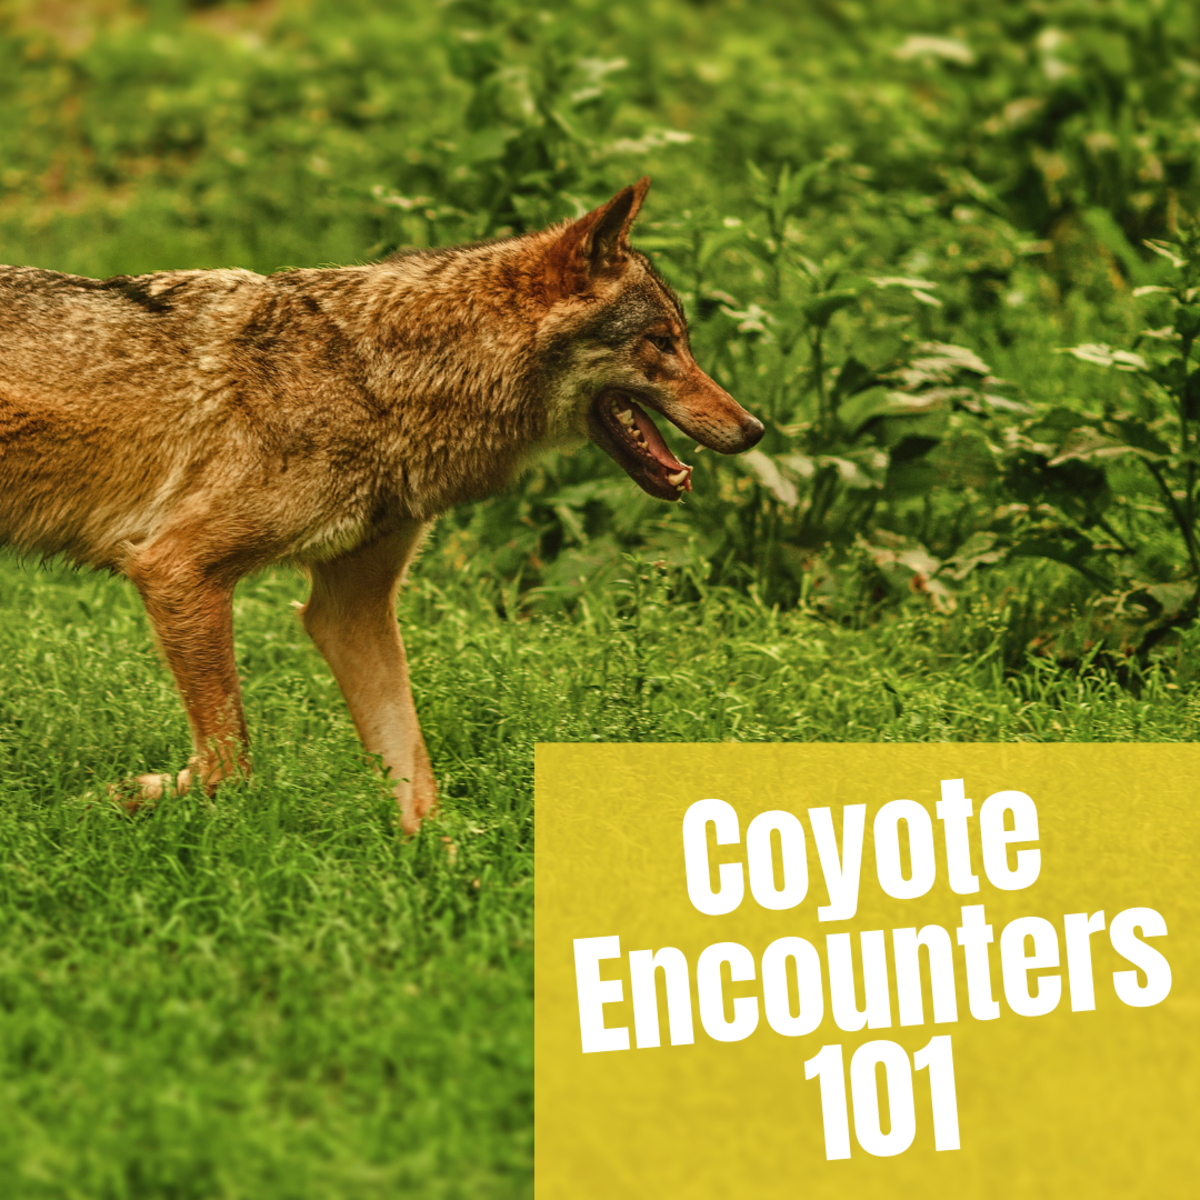 Do you know what to do if you see a coyote?